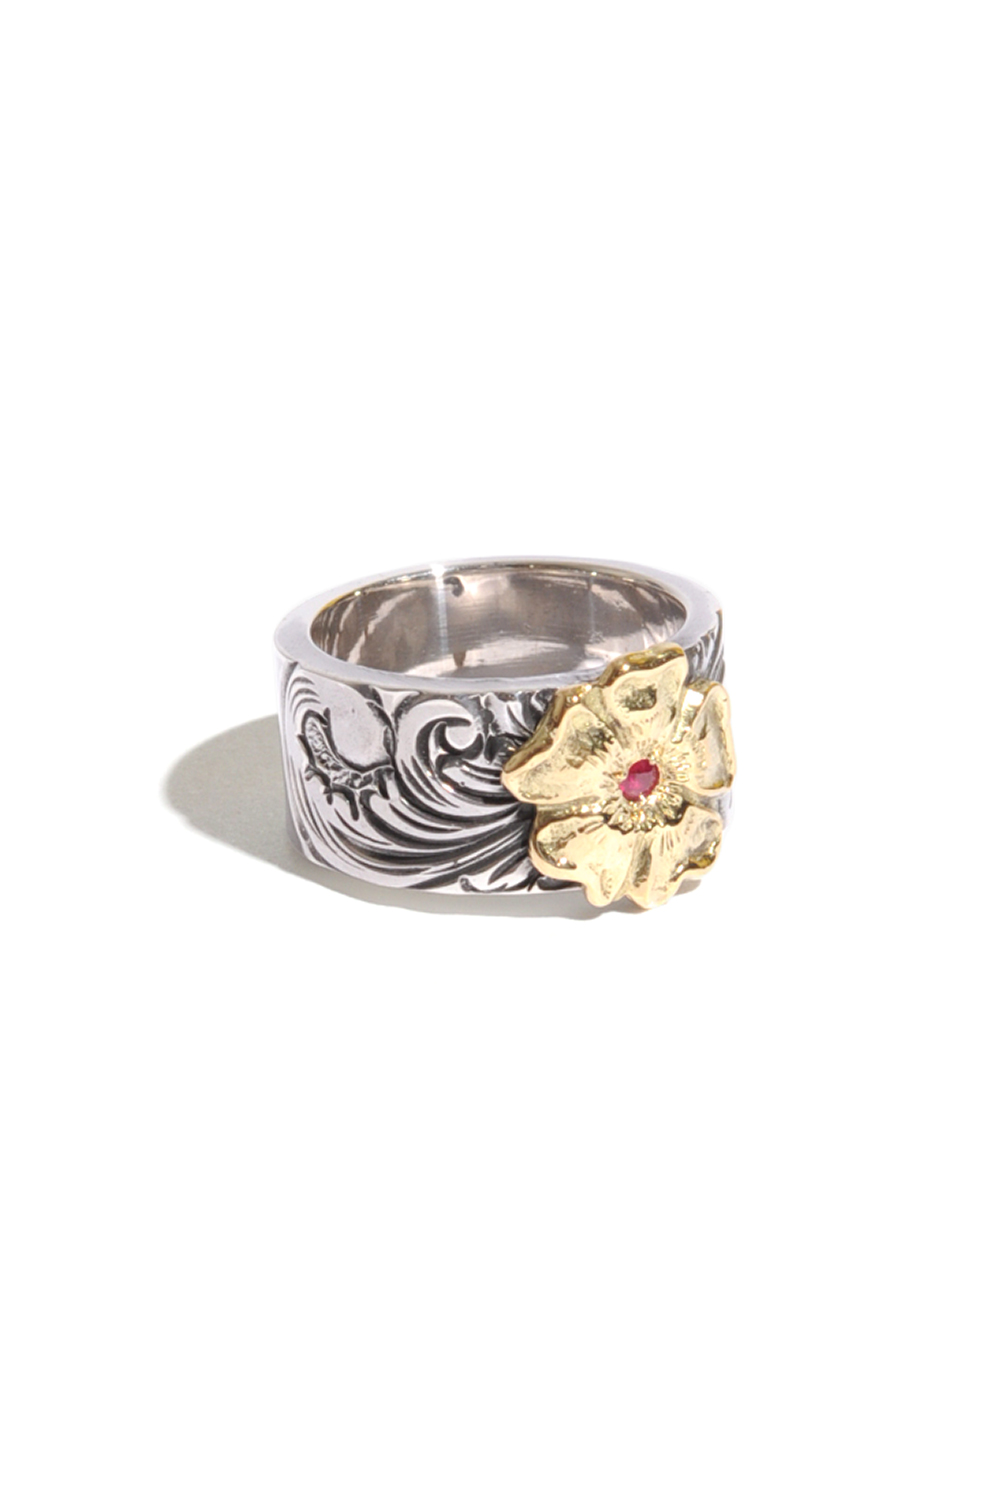 画像1: 【LARRY SMITH】18K ROSE KARAKUSA RING 10mm / with RUBY (1)